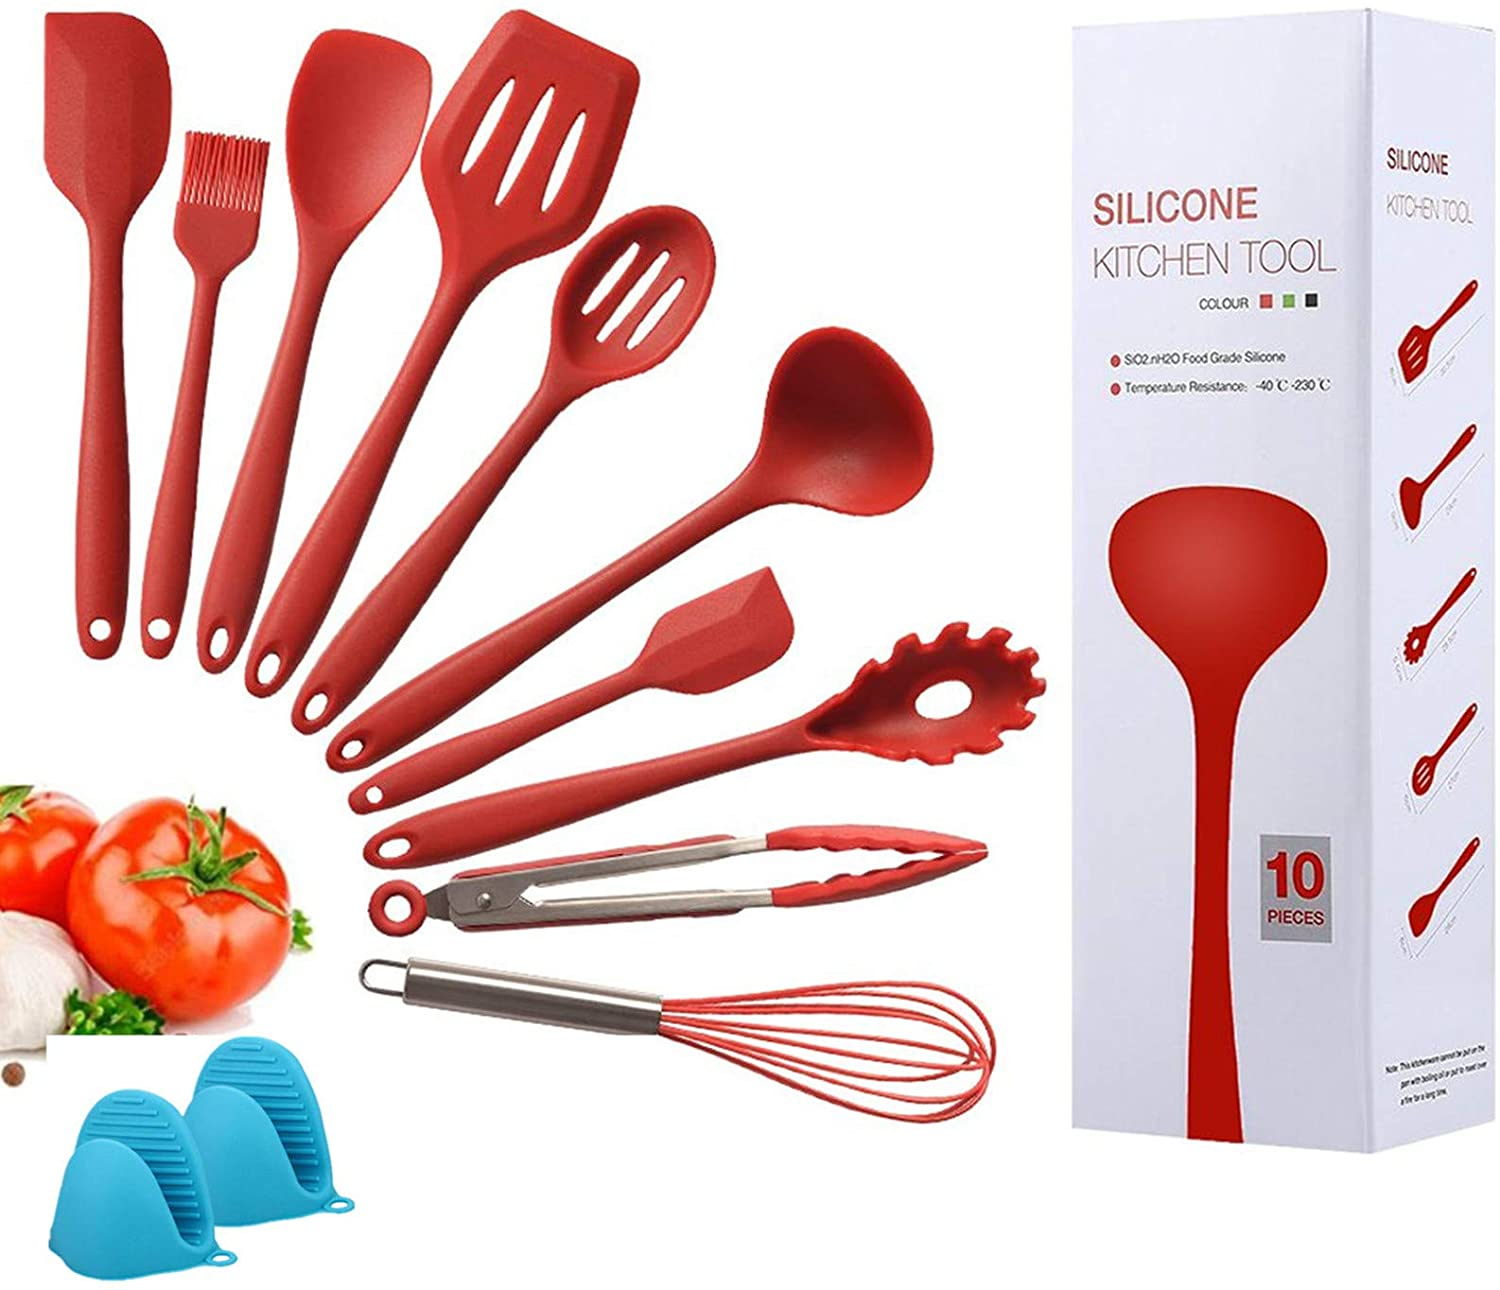 Kitchen Silicone Heat Resistant Cooking Utensil Set 12 Piece,Food Clip Grill Brush Soup Spoon Whisk Scraper Shovel Egg Blender Non Stick Tools Set Environmental Protection Oven Mitts